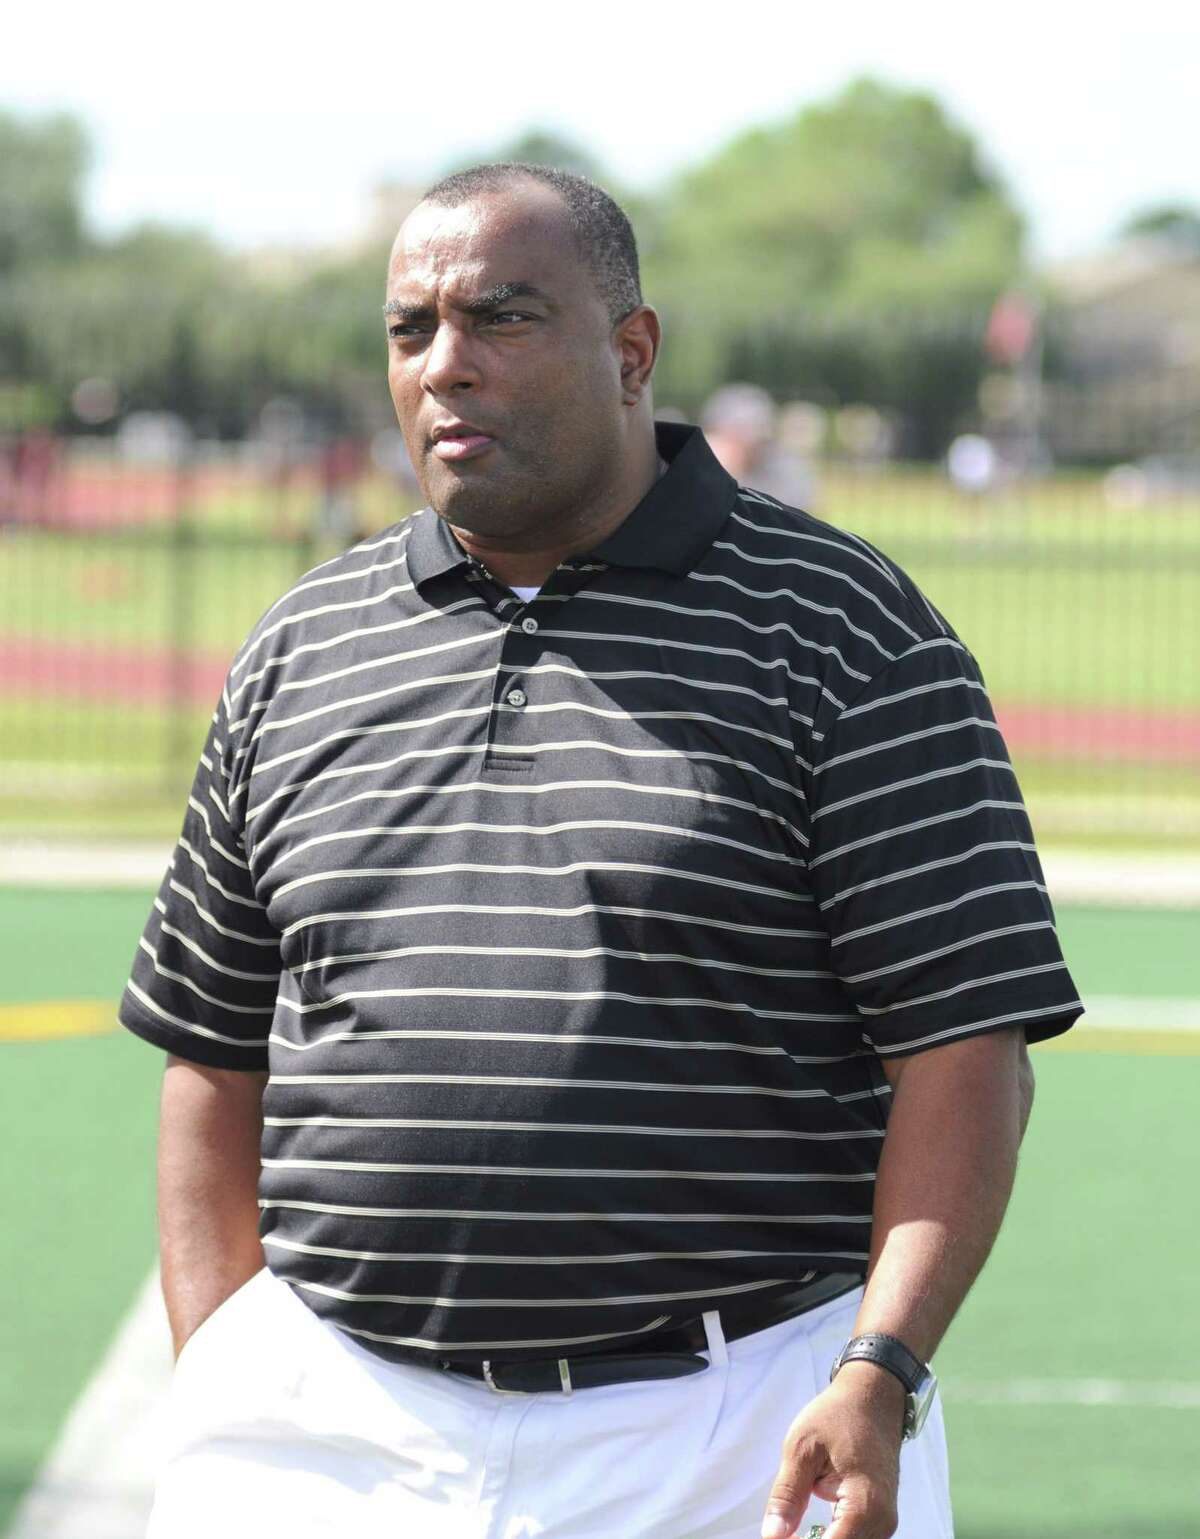 Clear Creek boys cross country-track and field coach Ruben Jordan came out to support the football Wildcats during a home scrimmage against Hastings on 8-20-10 at Veterans Memorial Stadium.